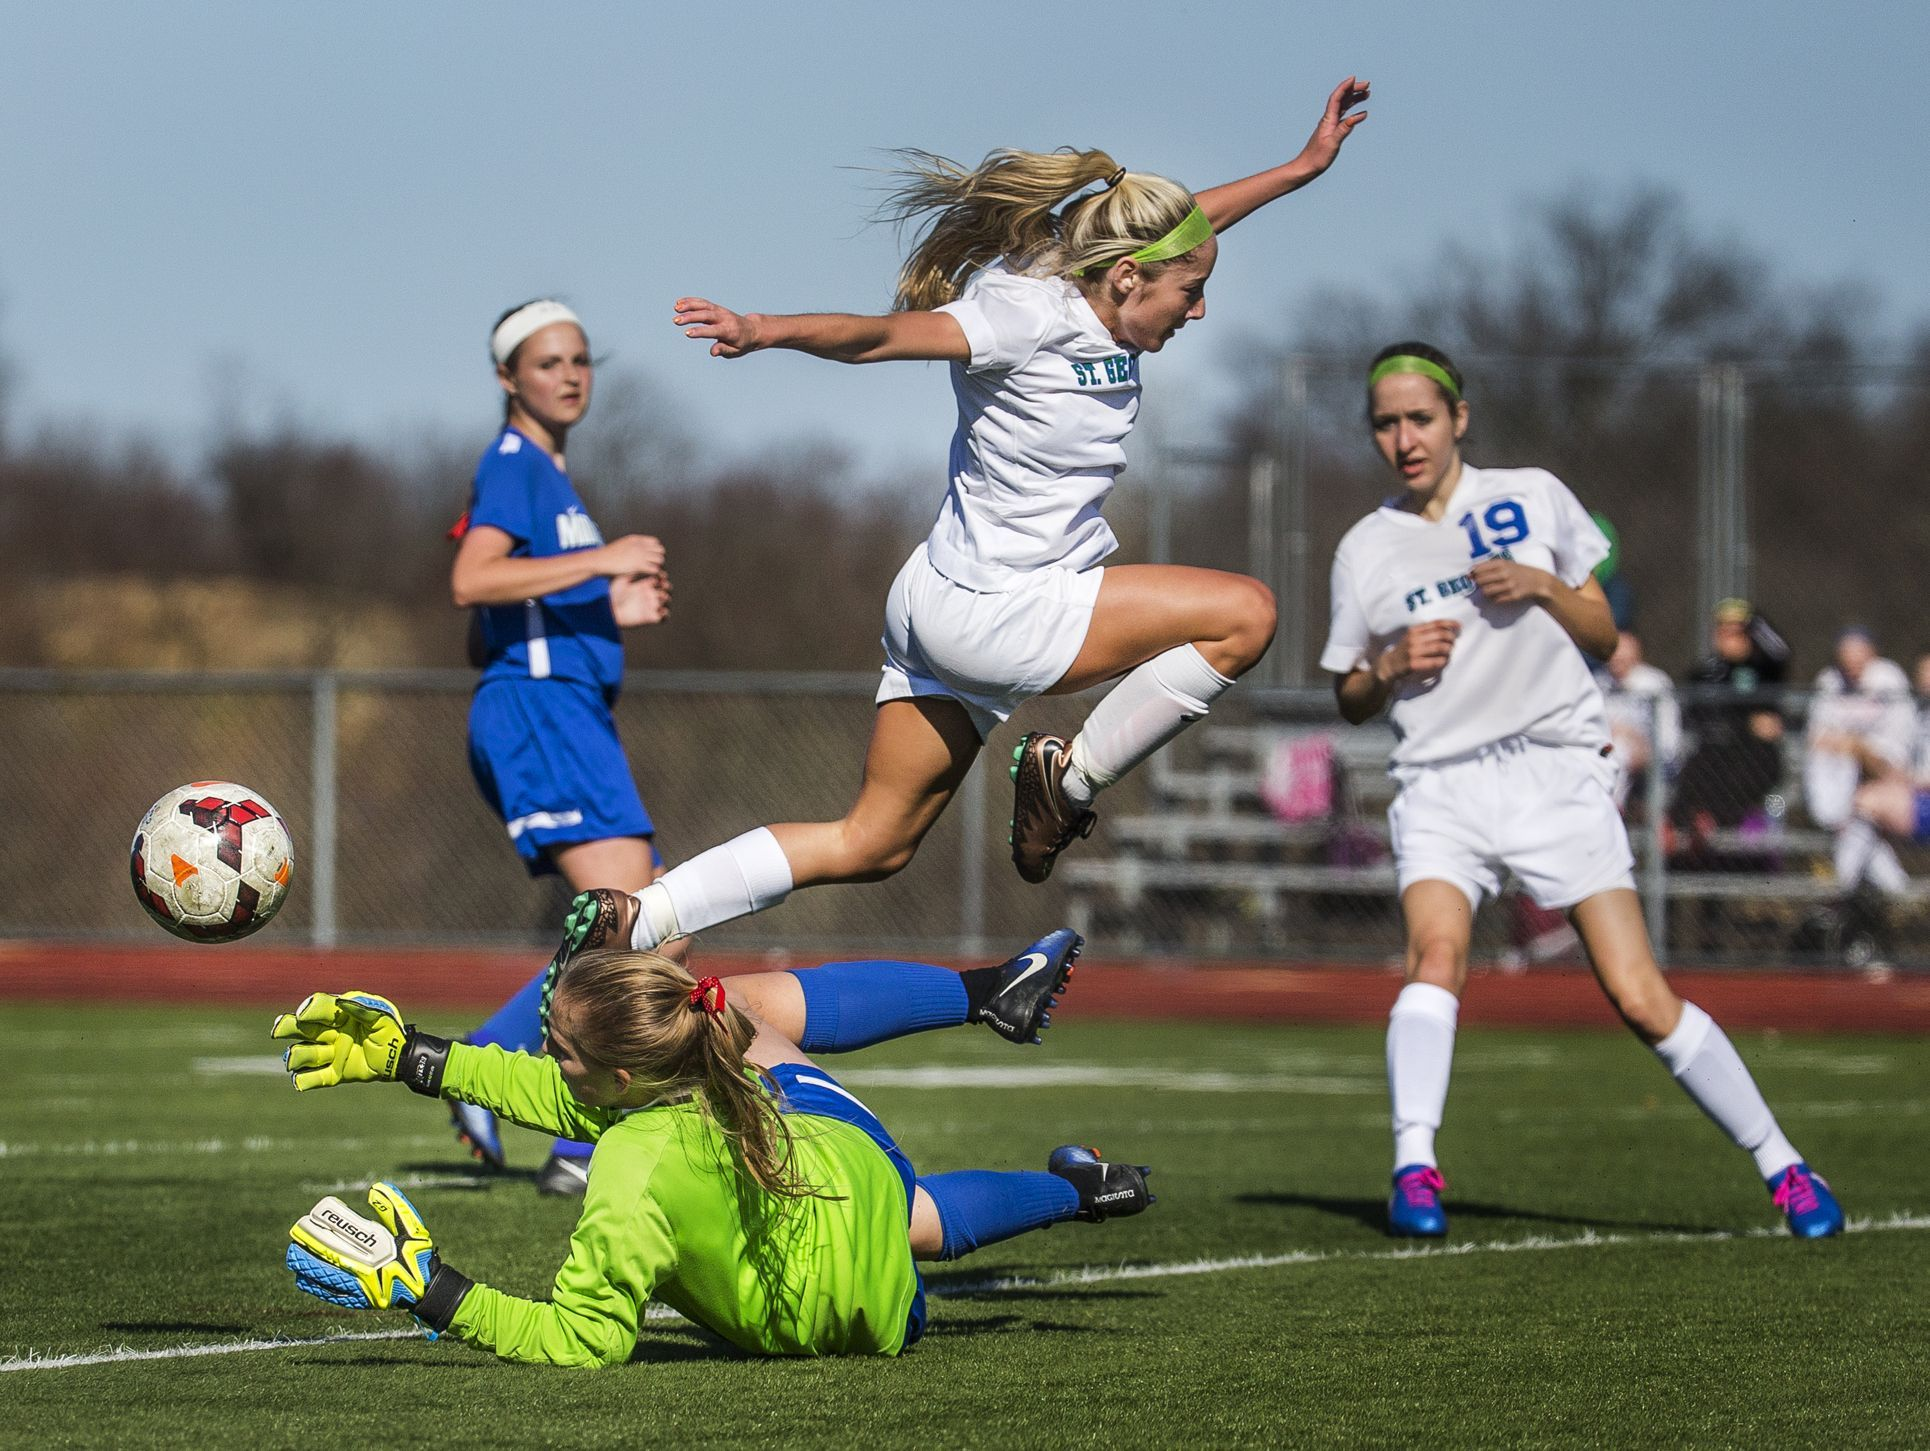 St. Georges' Daniella DeSouza leaps over Middletown keeper Taylor Wolf in the first half of Middletown's 4-0 win over St. Georges at St. Georges Technical High School in Middletown on Wednesday afternoon.